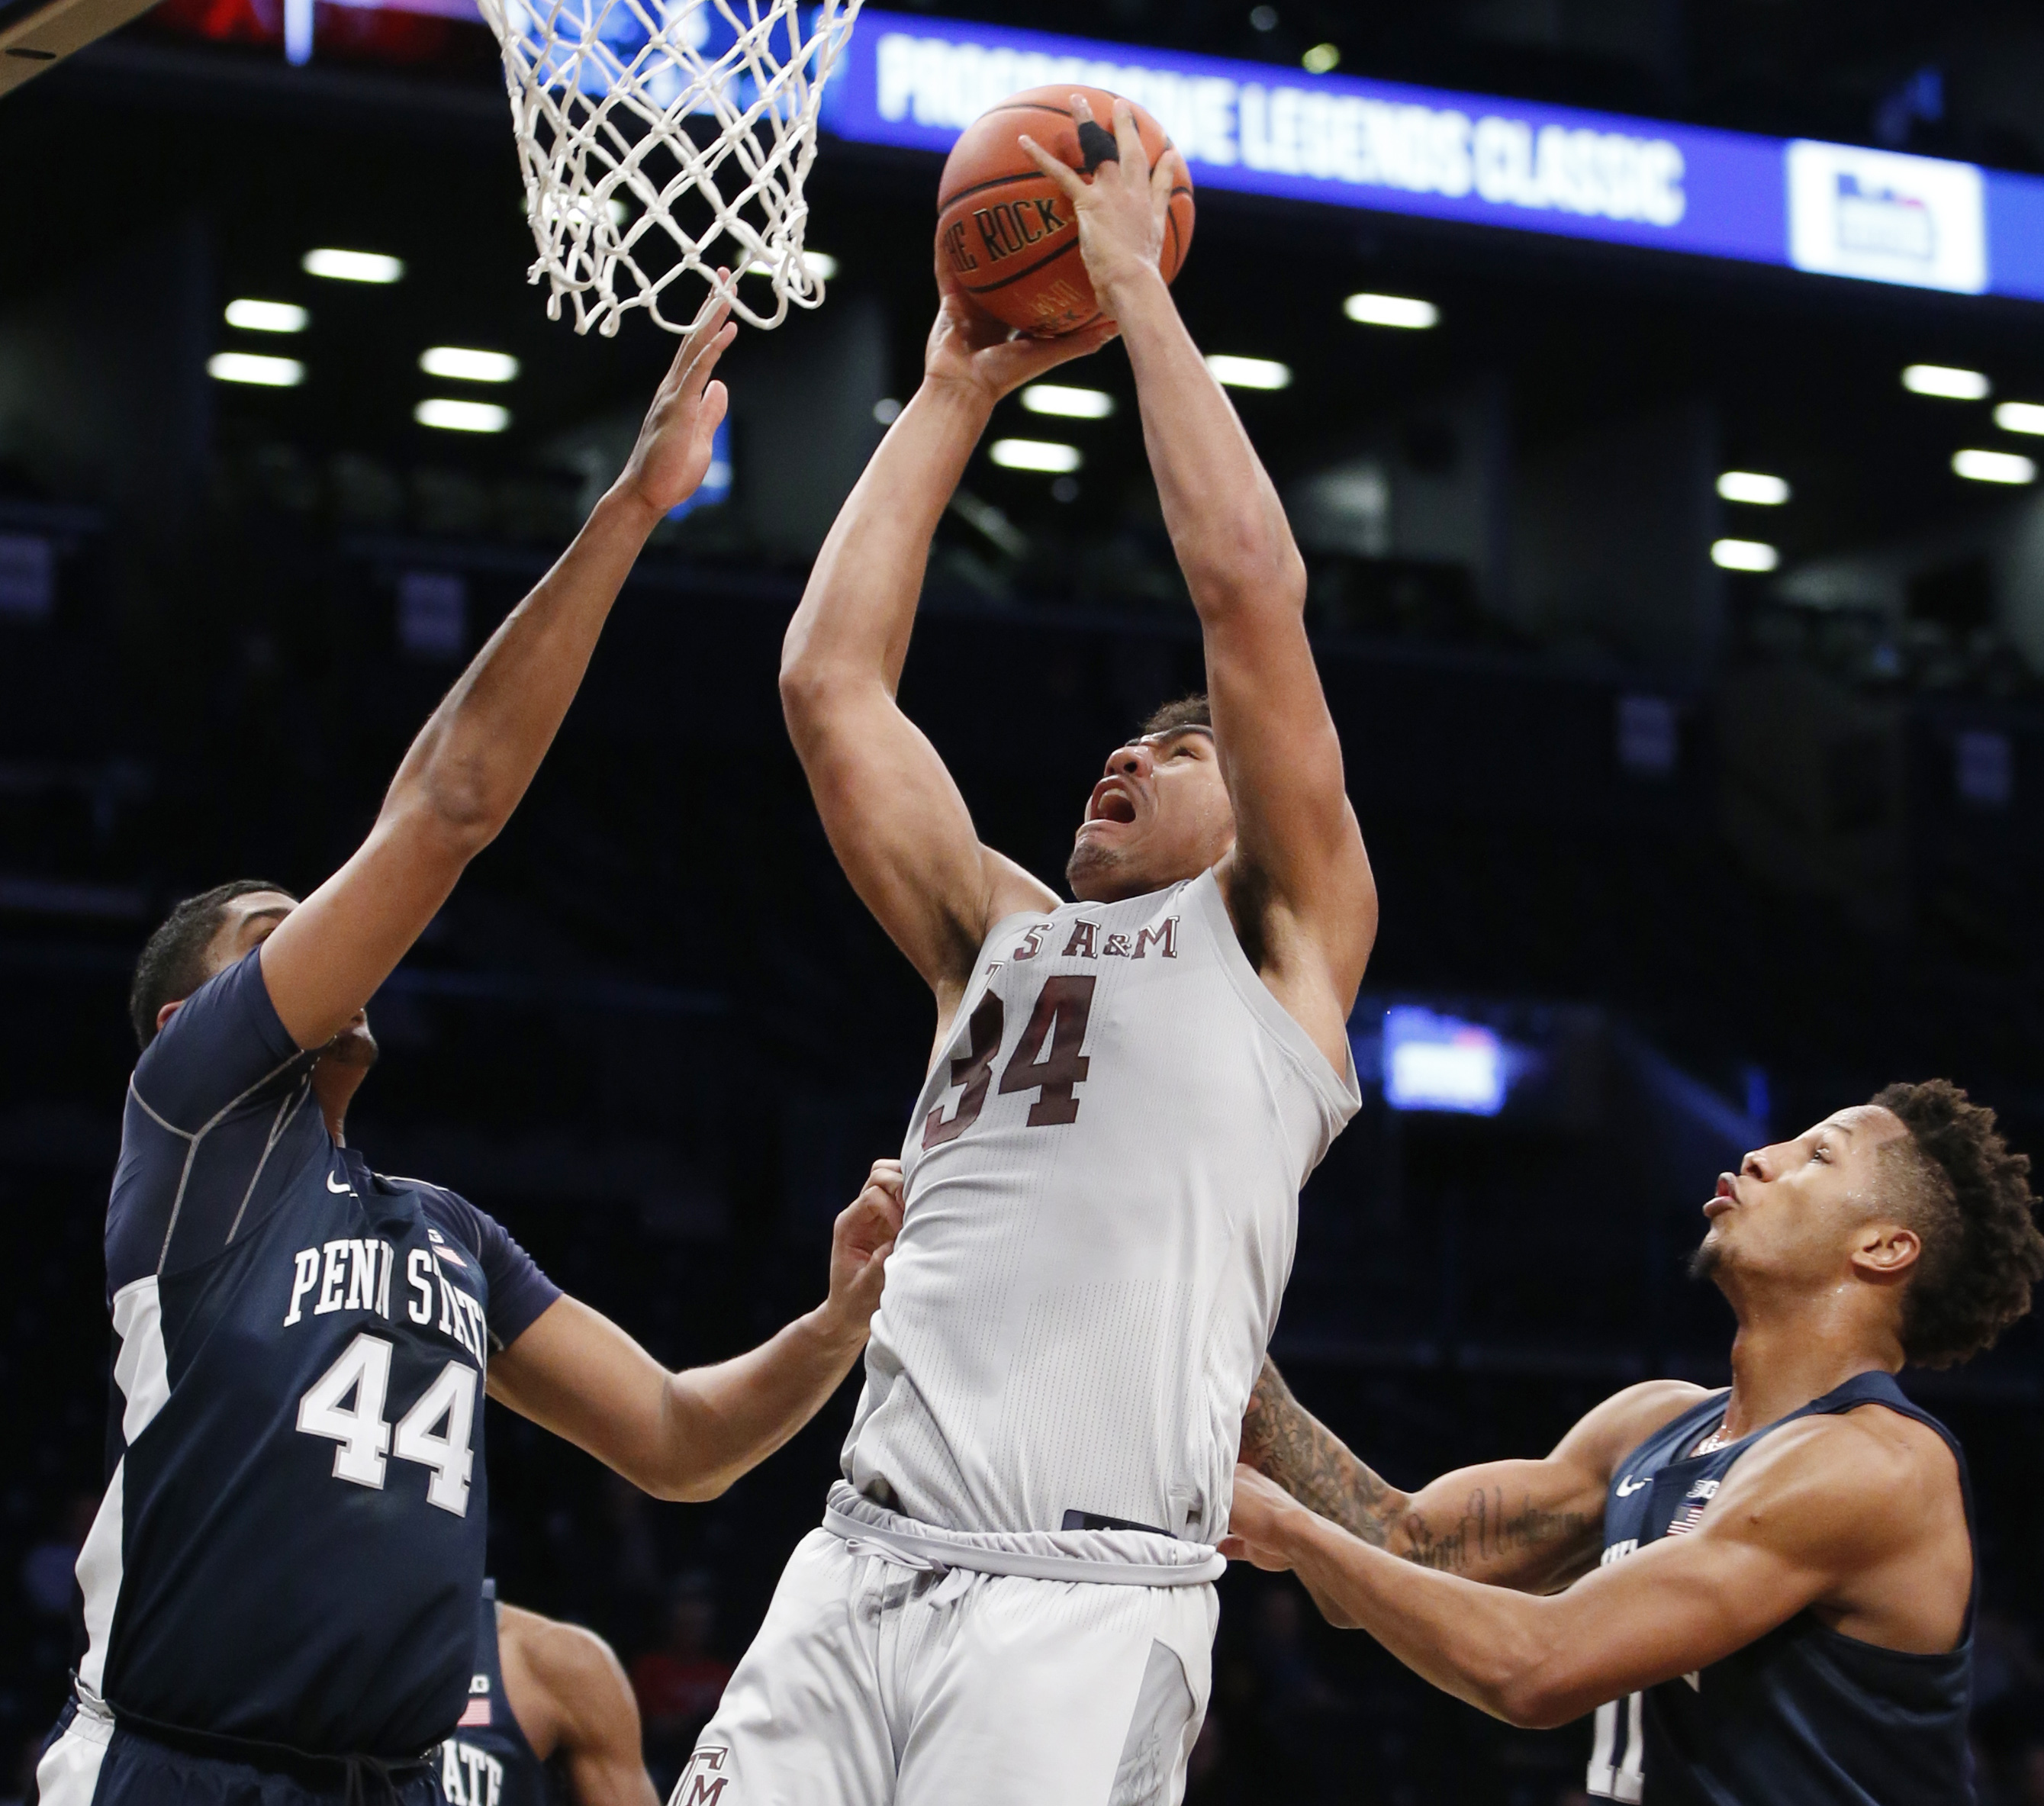 Penn State forward Julian Moore, left,  and teammate Lamar Stevens, right,  defend as Texas A&M center Tyler Davis, center,  takes a shot during the first half of an NCAA college basketball game in the Legends Classic tournament, Tuesday, Nov. 21, 2017, in New York. (AP Photo/Kathy Willens)